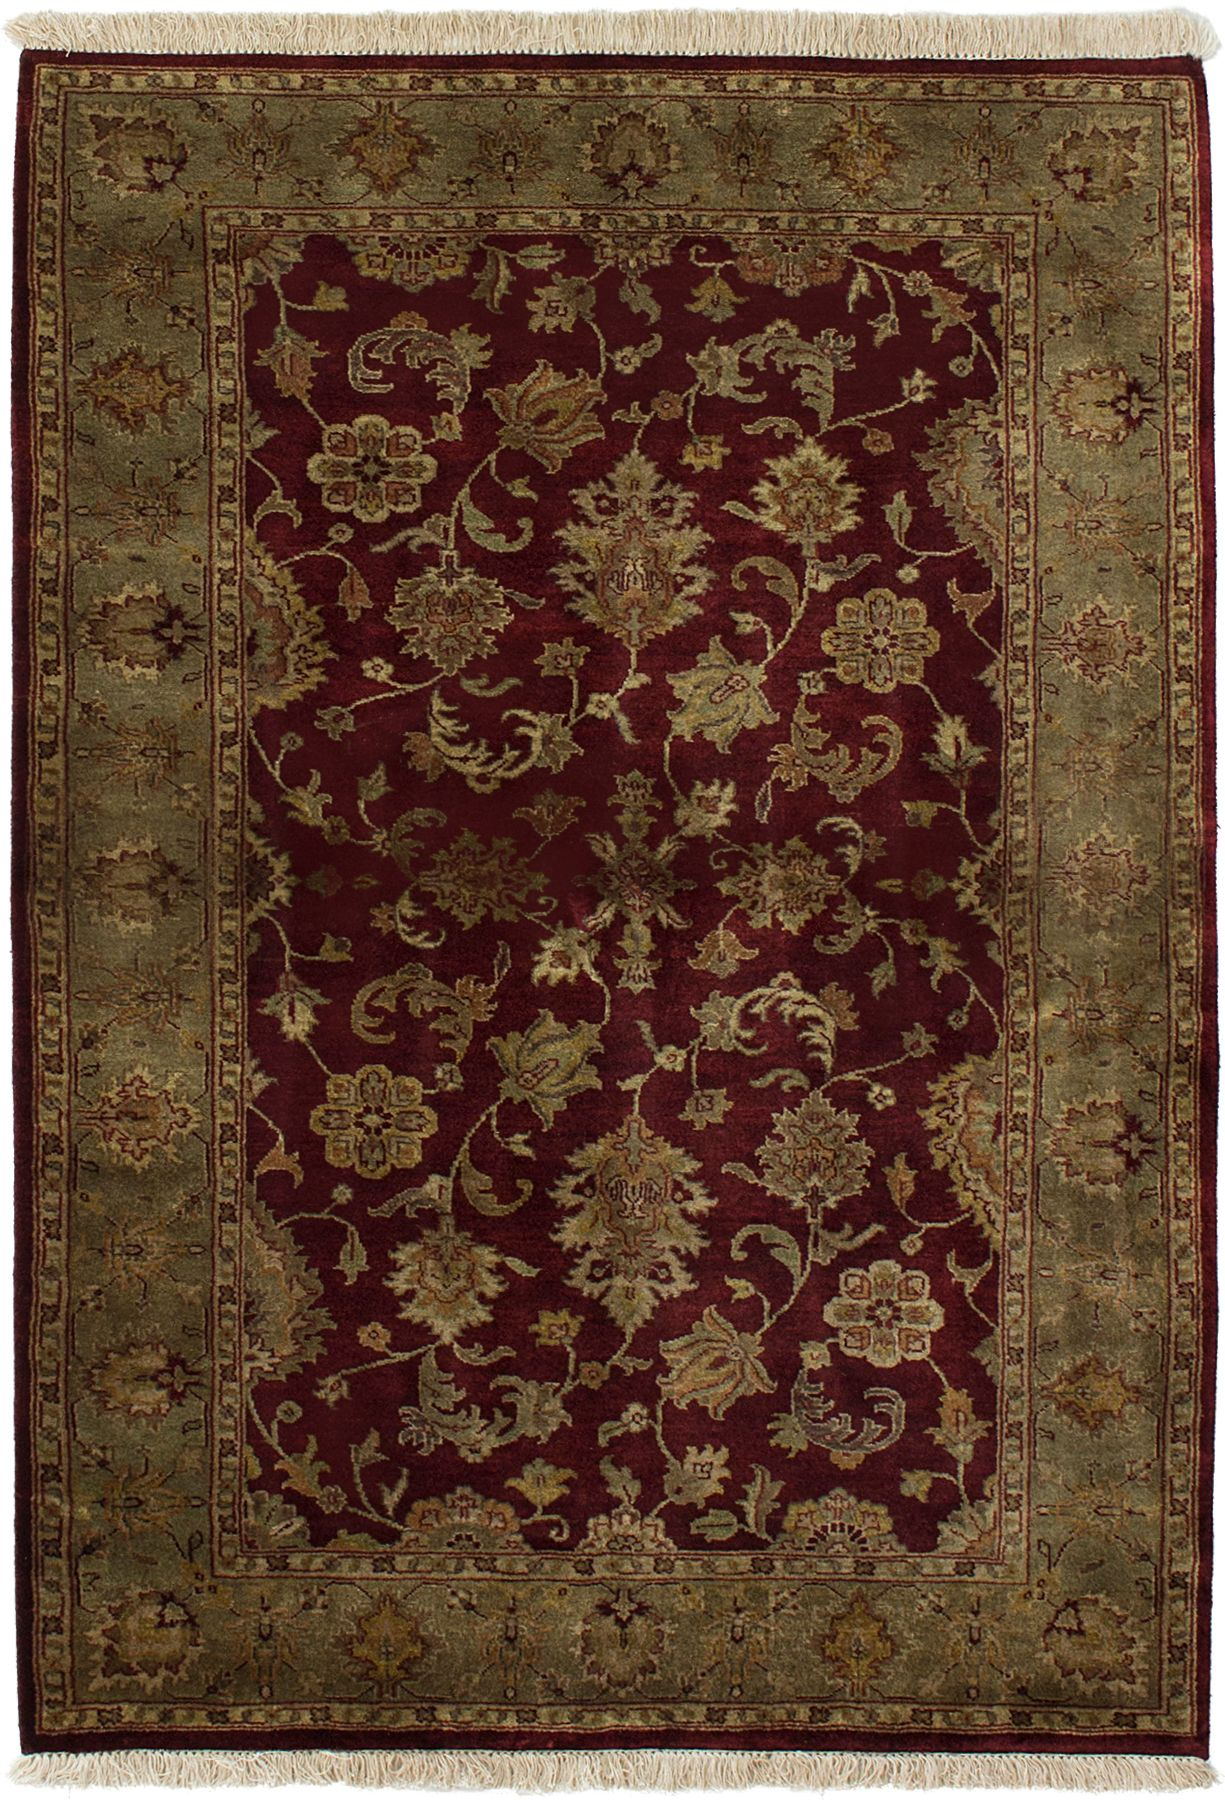 """Hand-knotted Jamshidpour Dark Red Wool Rug 4'0"""" x 5'9"""" Size: 4'0"""" x 5'9"""""""